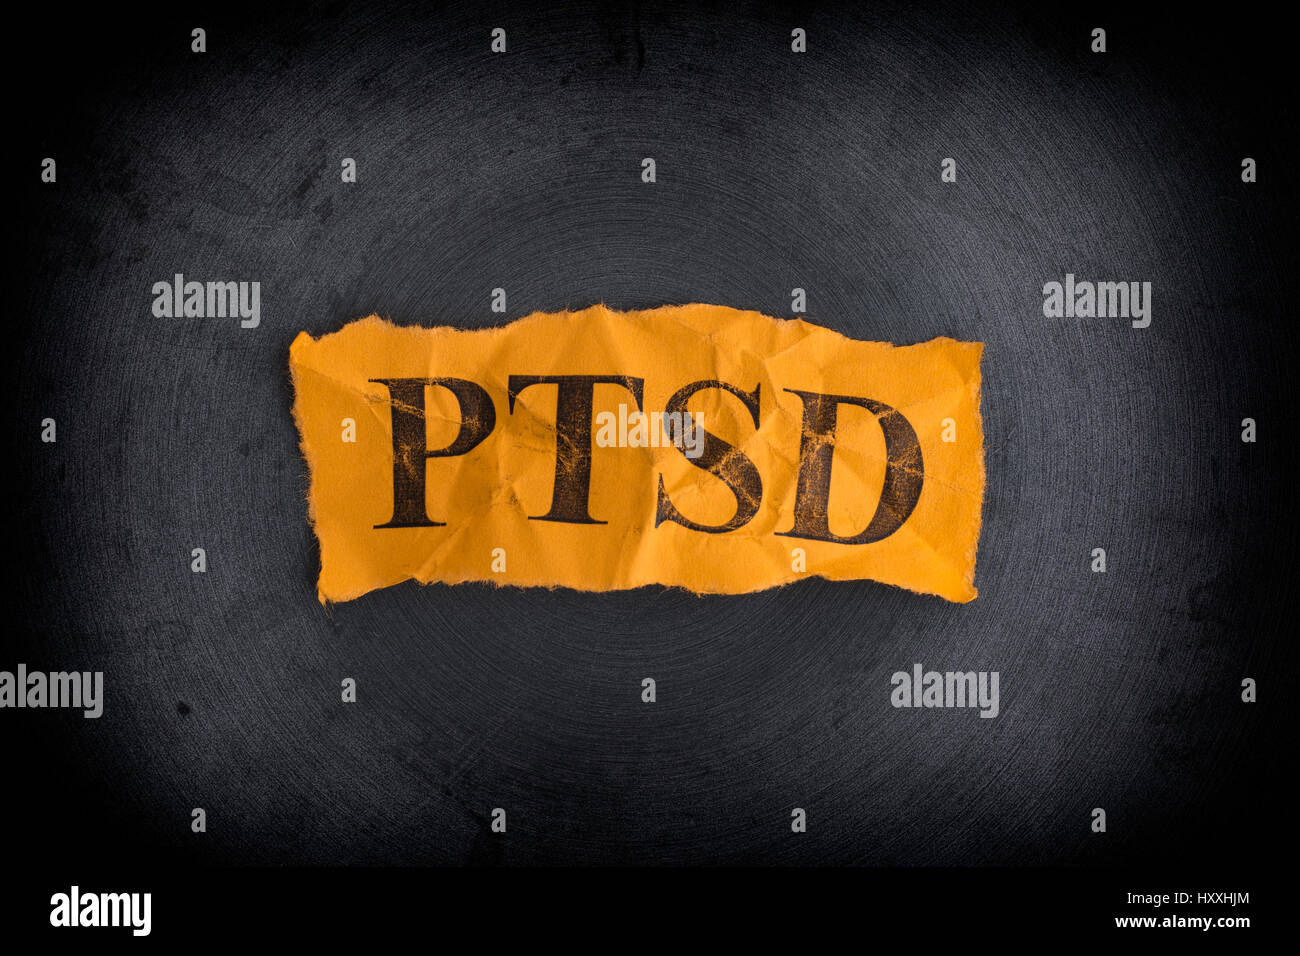 Torn pieces of paper with abbreviation PTSD. Posttraumatic stress disorder. Concept Image. Closeup. - Stock Image